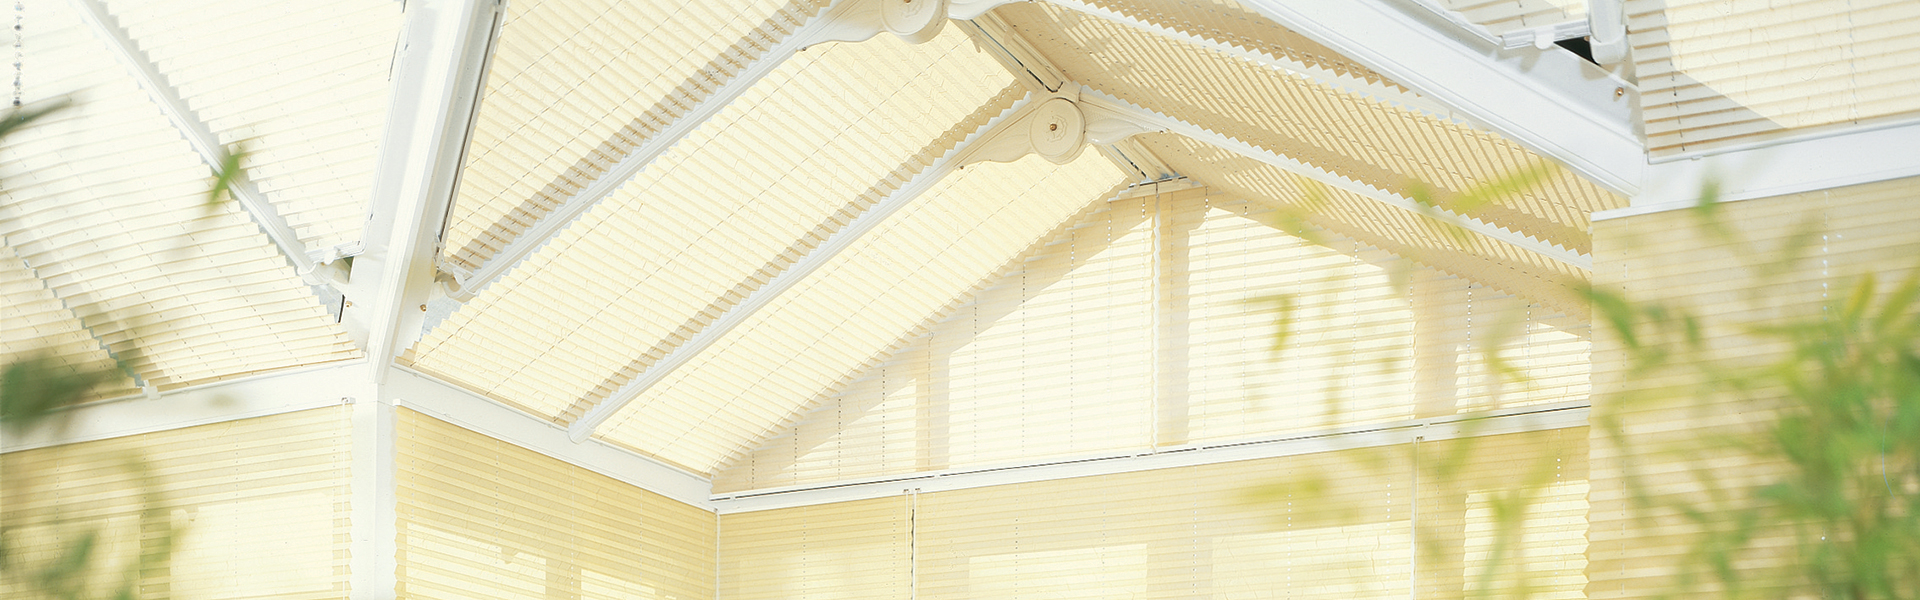 Conservatory Roof Blinds Preston Made To Measure Blinds